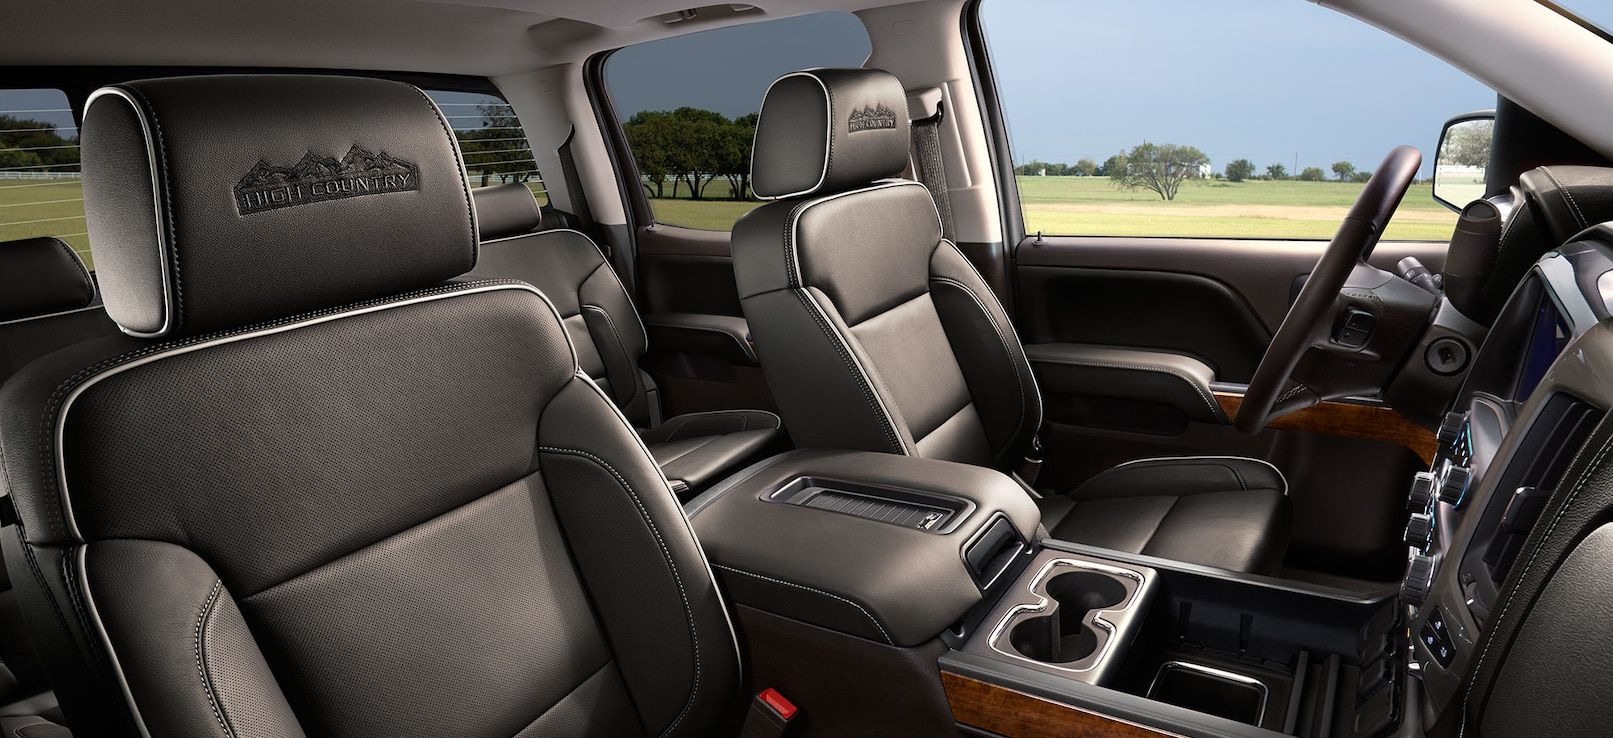 Stylish Seating in the Silverado 1500